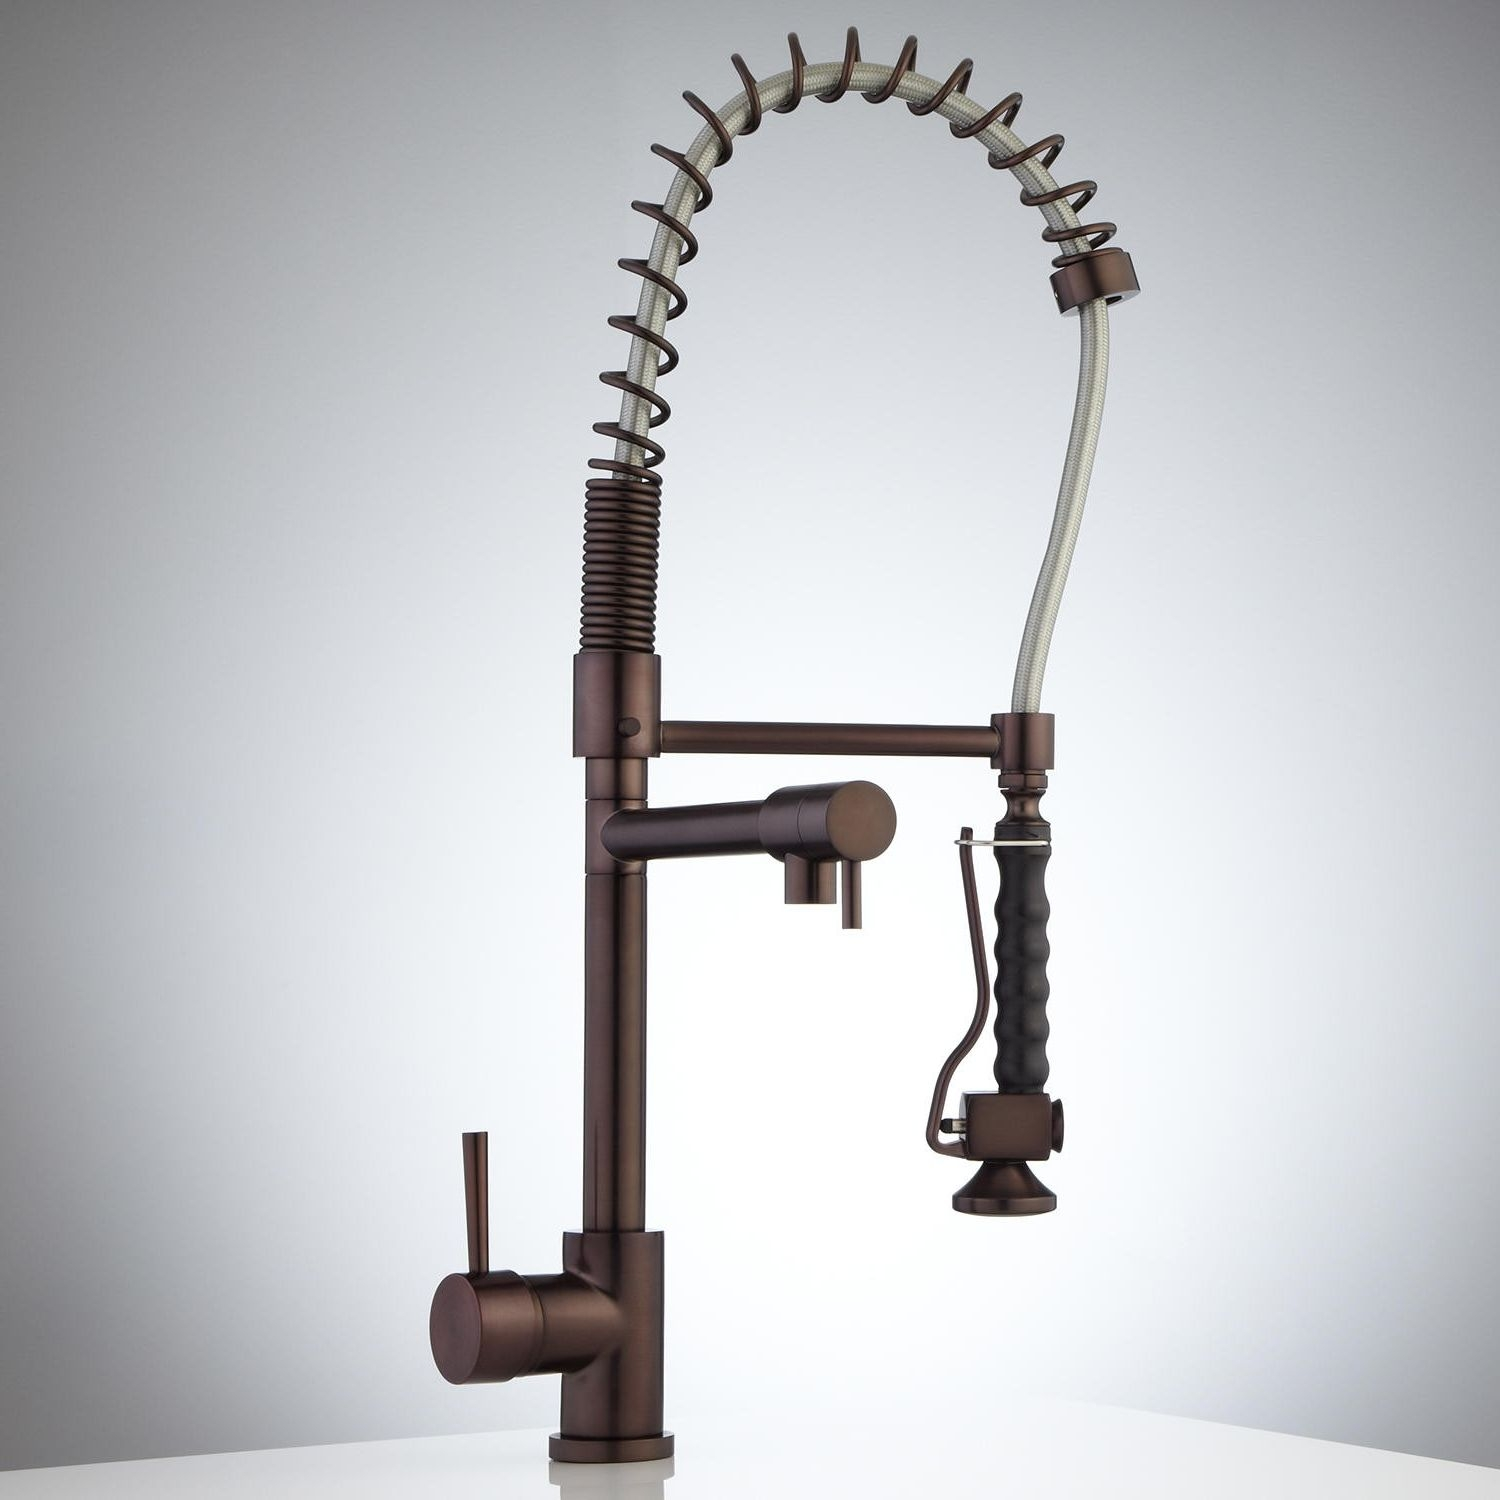 Ideas, industrial looking kitchen faucets industrial looking kitchen faucets industrial kitchen faucet good furniture 1500 x 1500  .